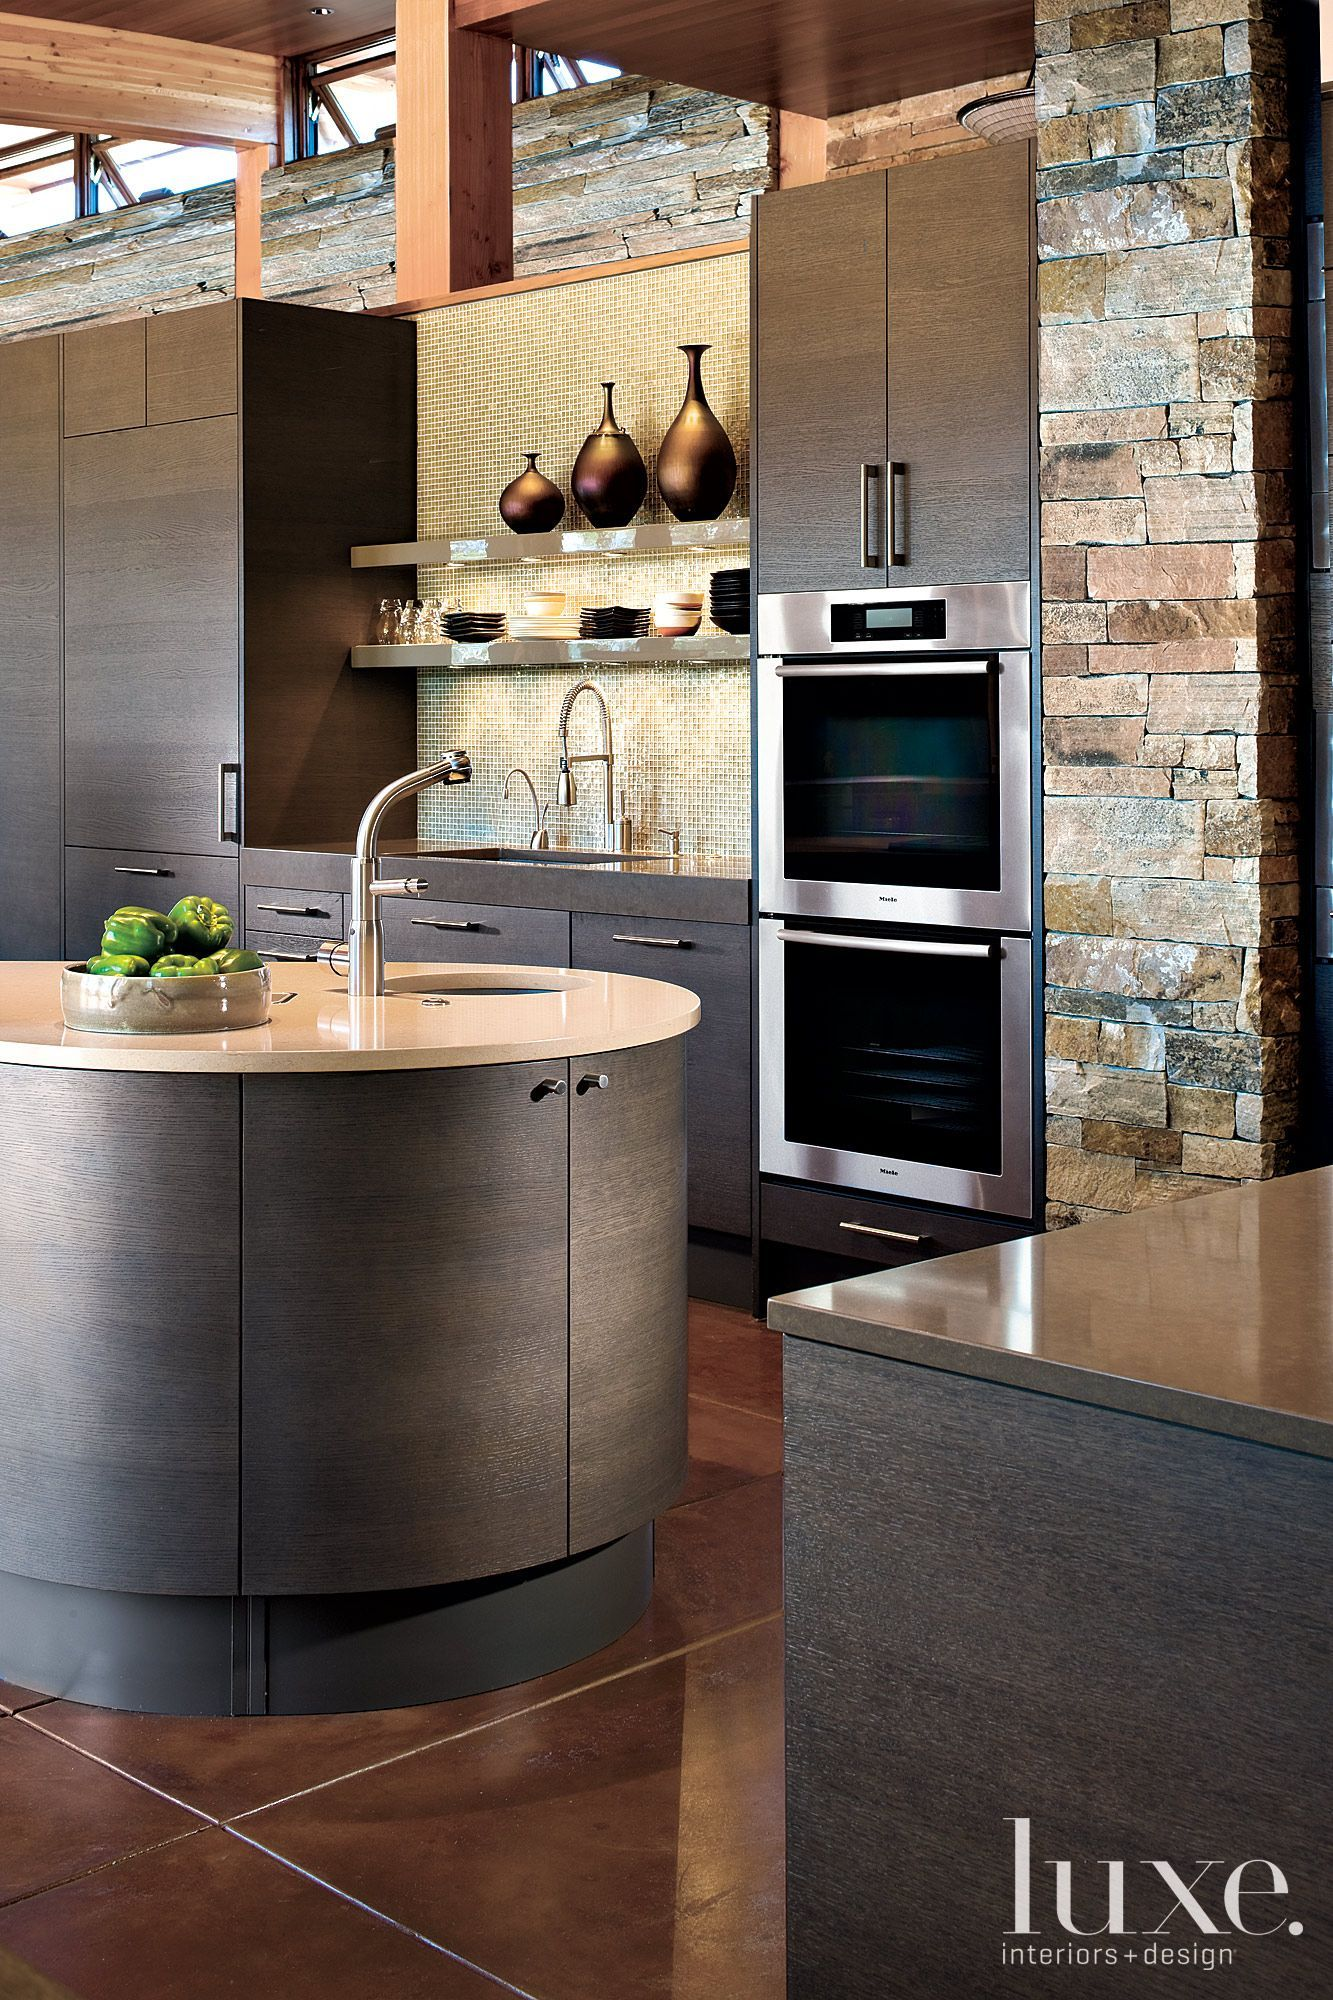 Need Some Help Decorating Your Kitchen? We Have The Solutions! This  Contemporary Kitchen Design Ideas Are The Perfect Home Interior Decor  Youu0027ve Been ...